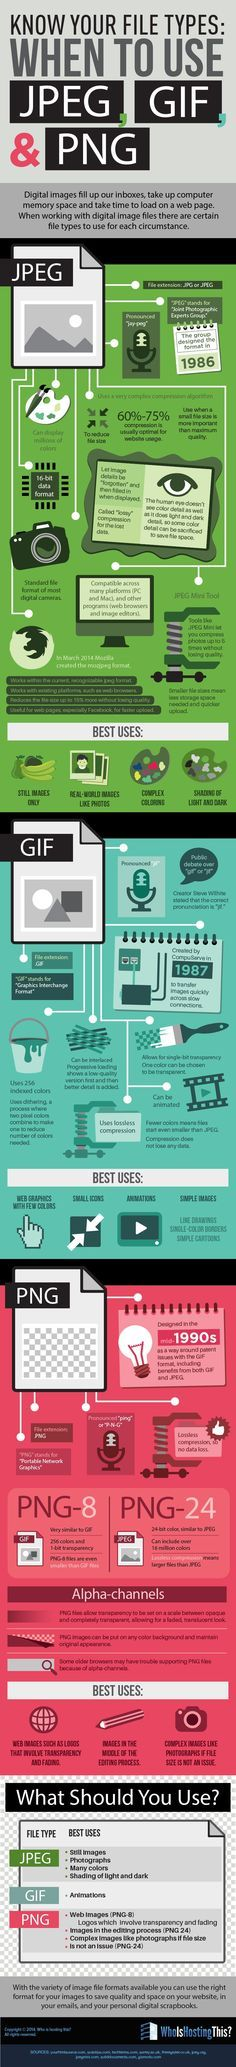 Know Your Digital Image Types: When to Use JPG, GIF And PNG - #infographic #photography #internet Tooling Parts @ http://www.ch-tech.ch